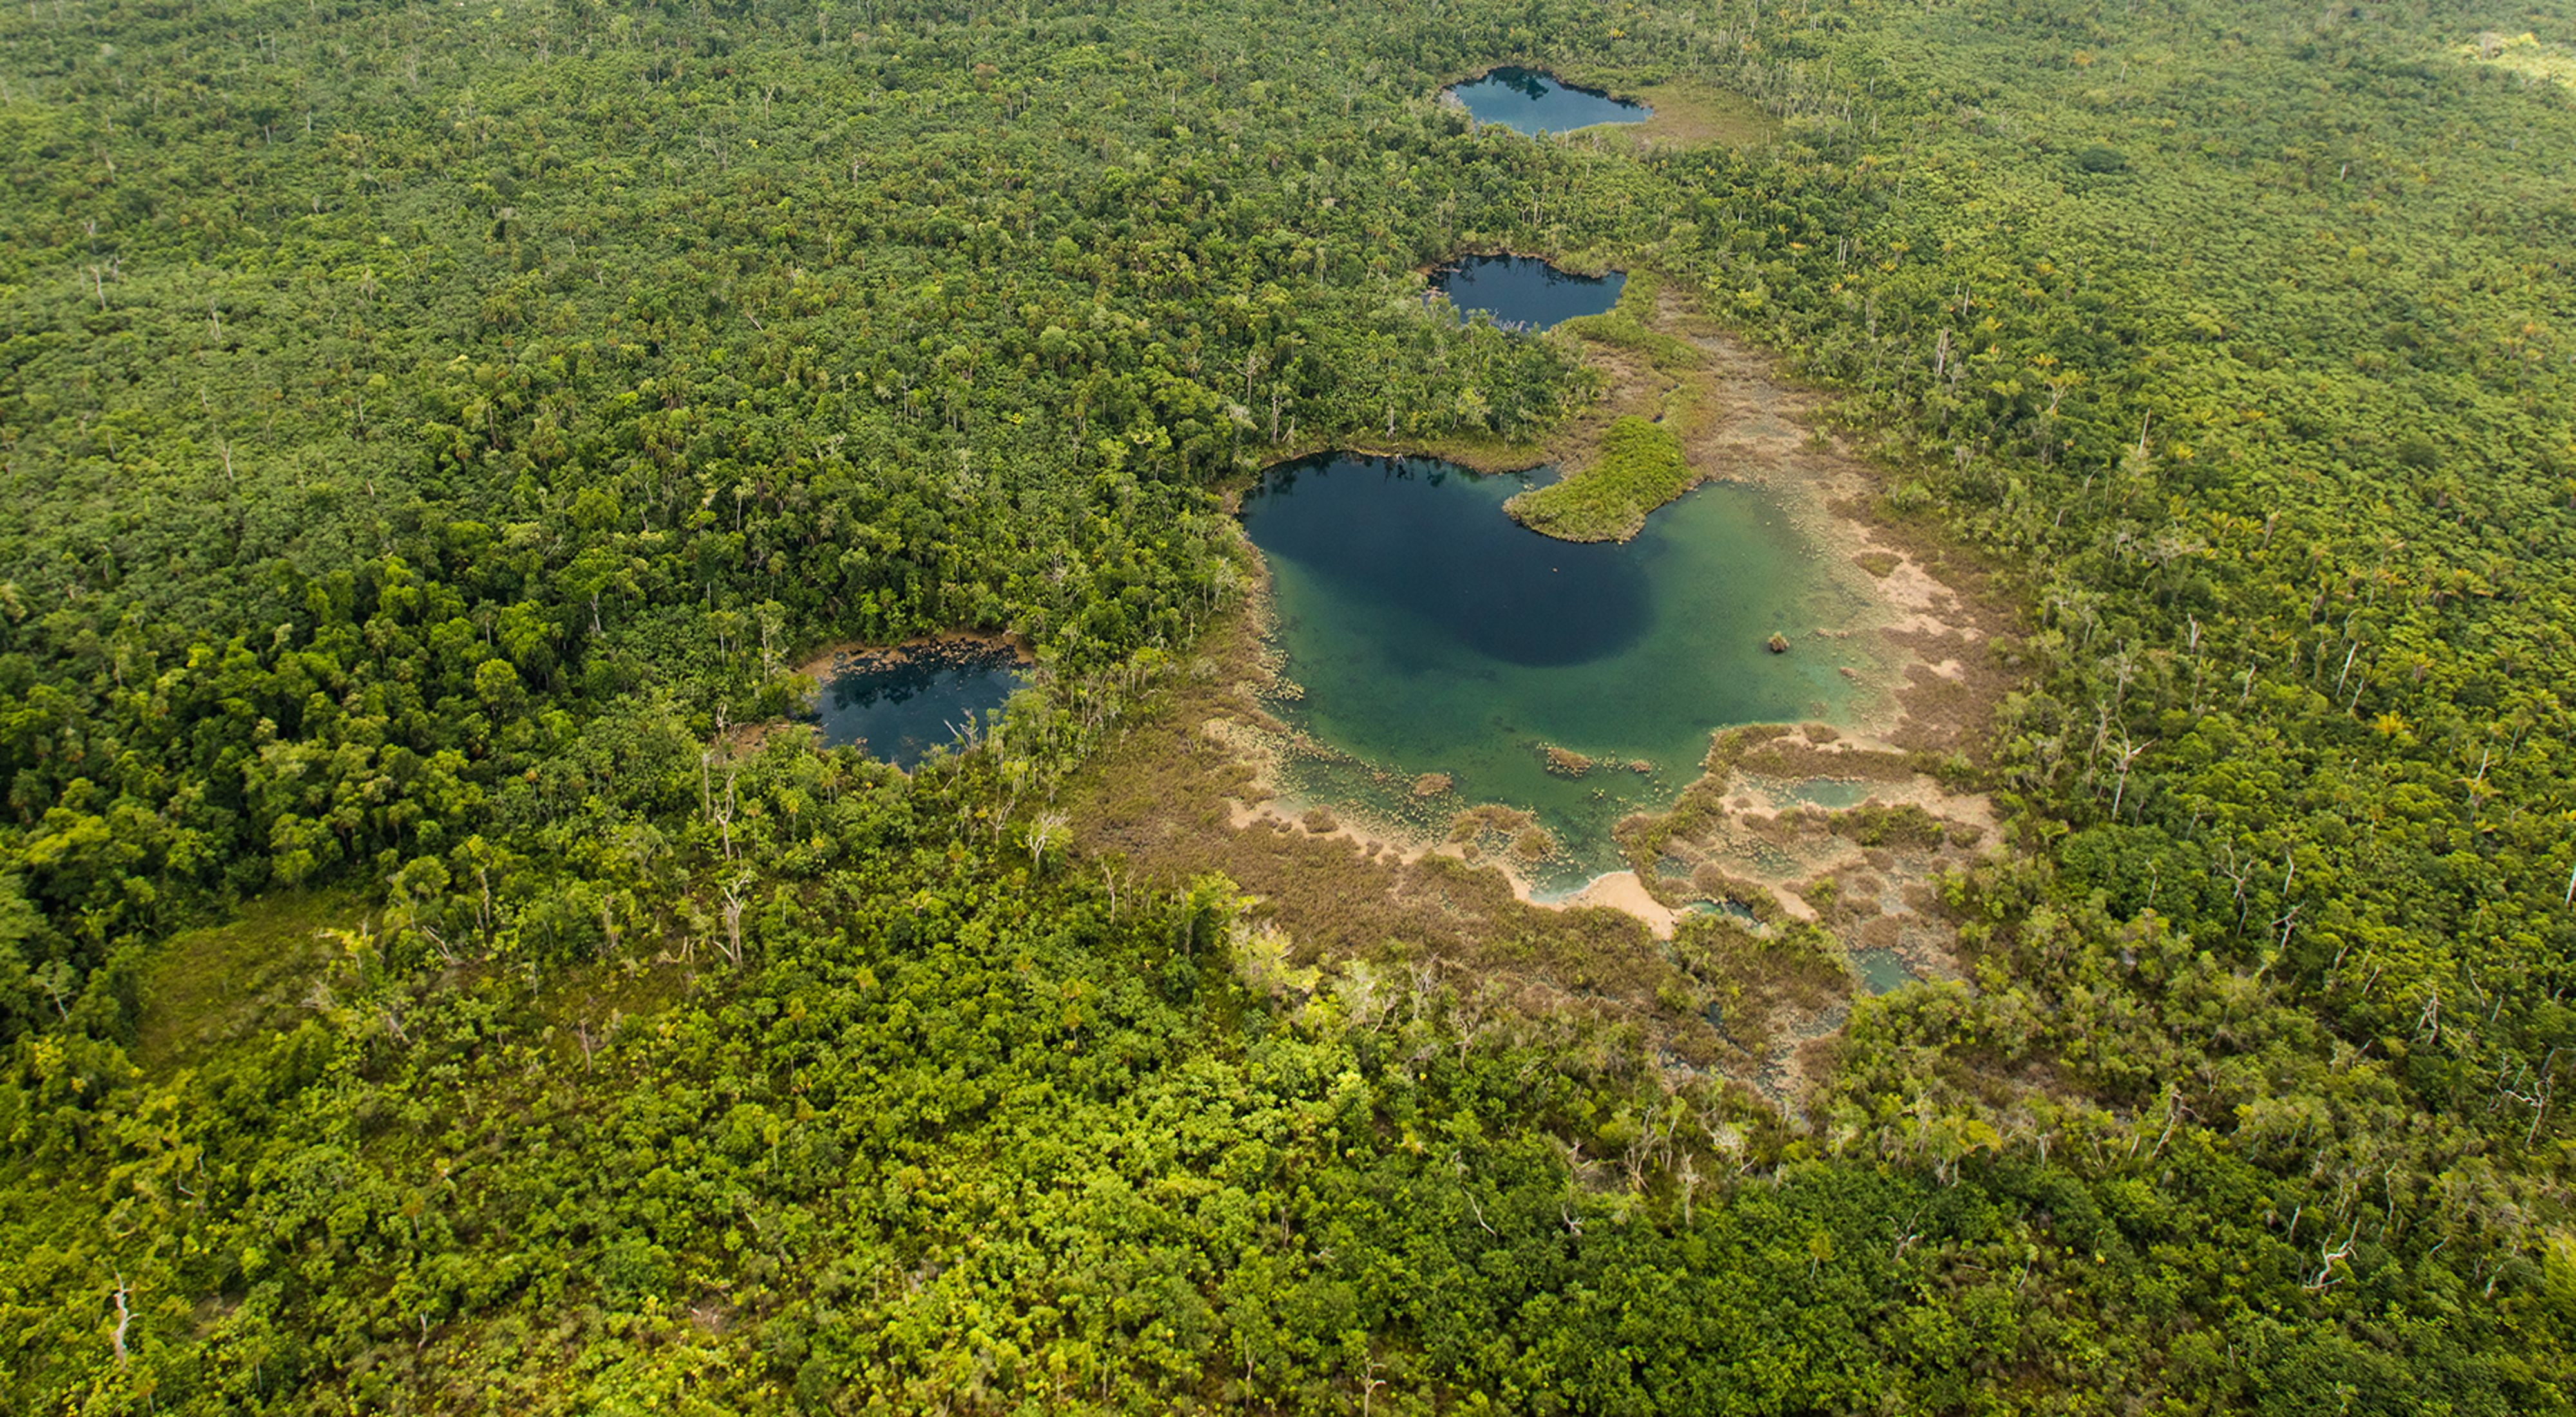 An aerial view of the Cara Blanca Pools 16, 17, 18, 19 in Belize's Maya Forest